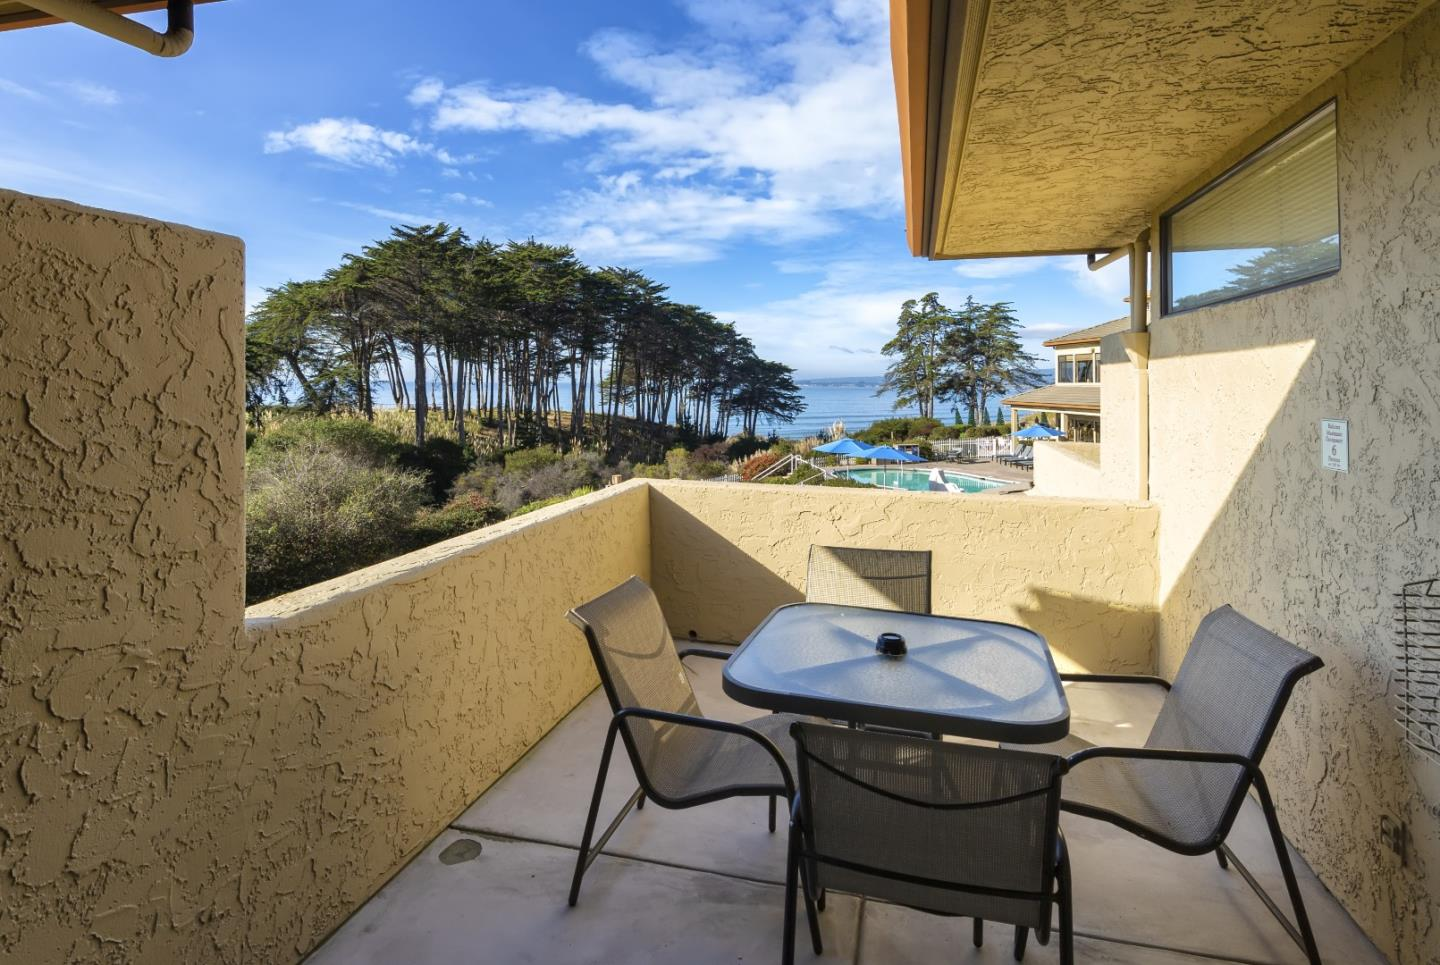 212 Seascape Resort Drive Drive Aptos, CA 95003 - MLS #: ML81732957